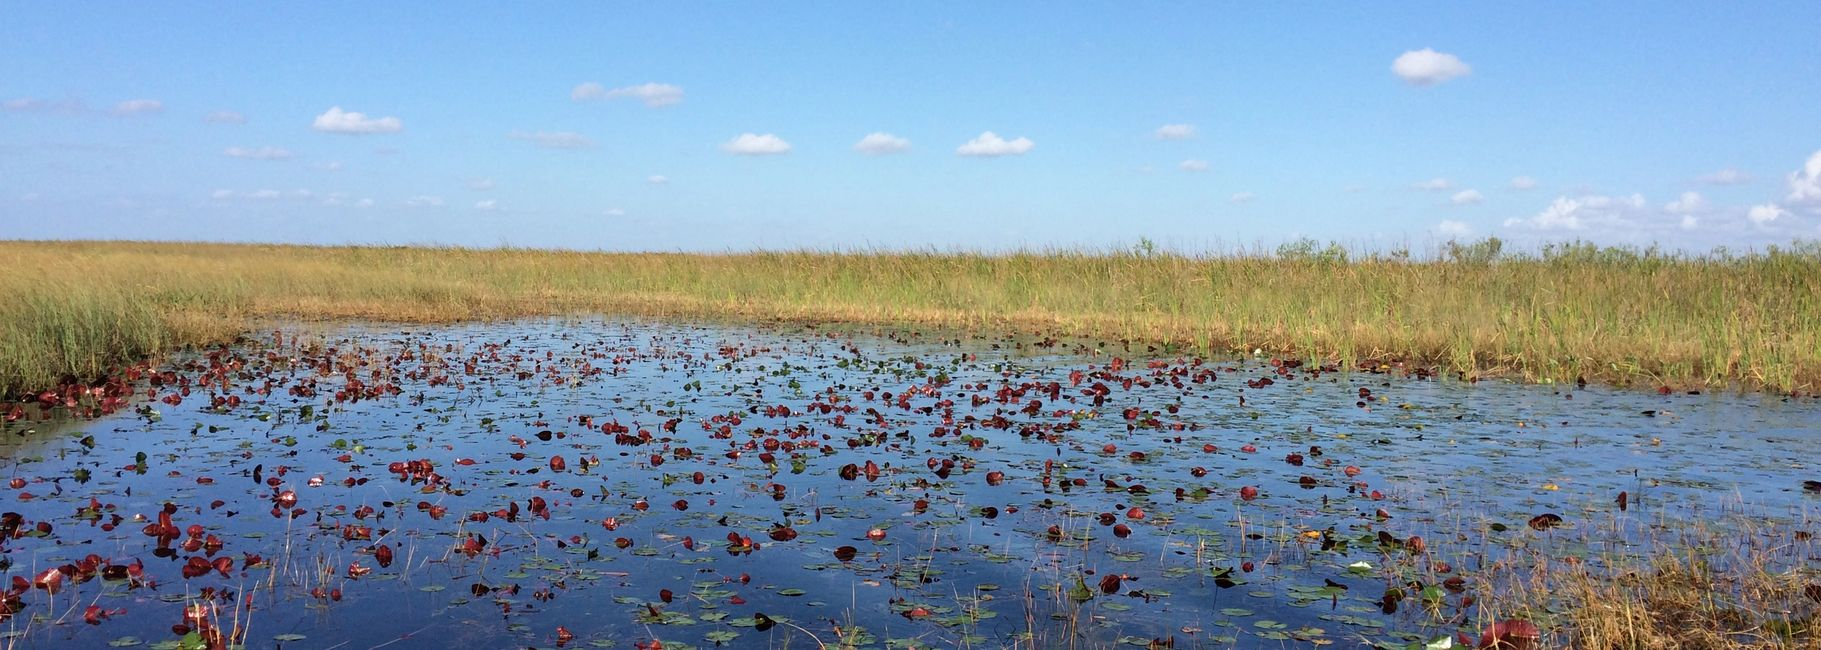 JetsetPrivate Air Day Trips to the Florida Everglades. Wilderness Experiences. Charter flights